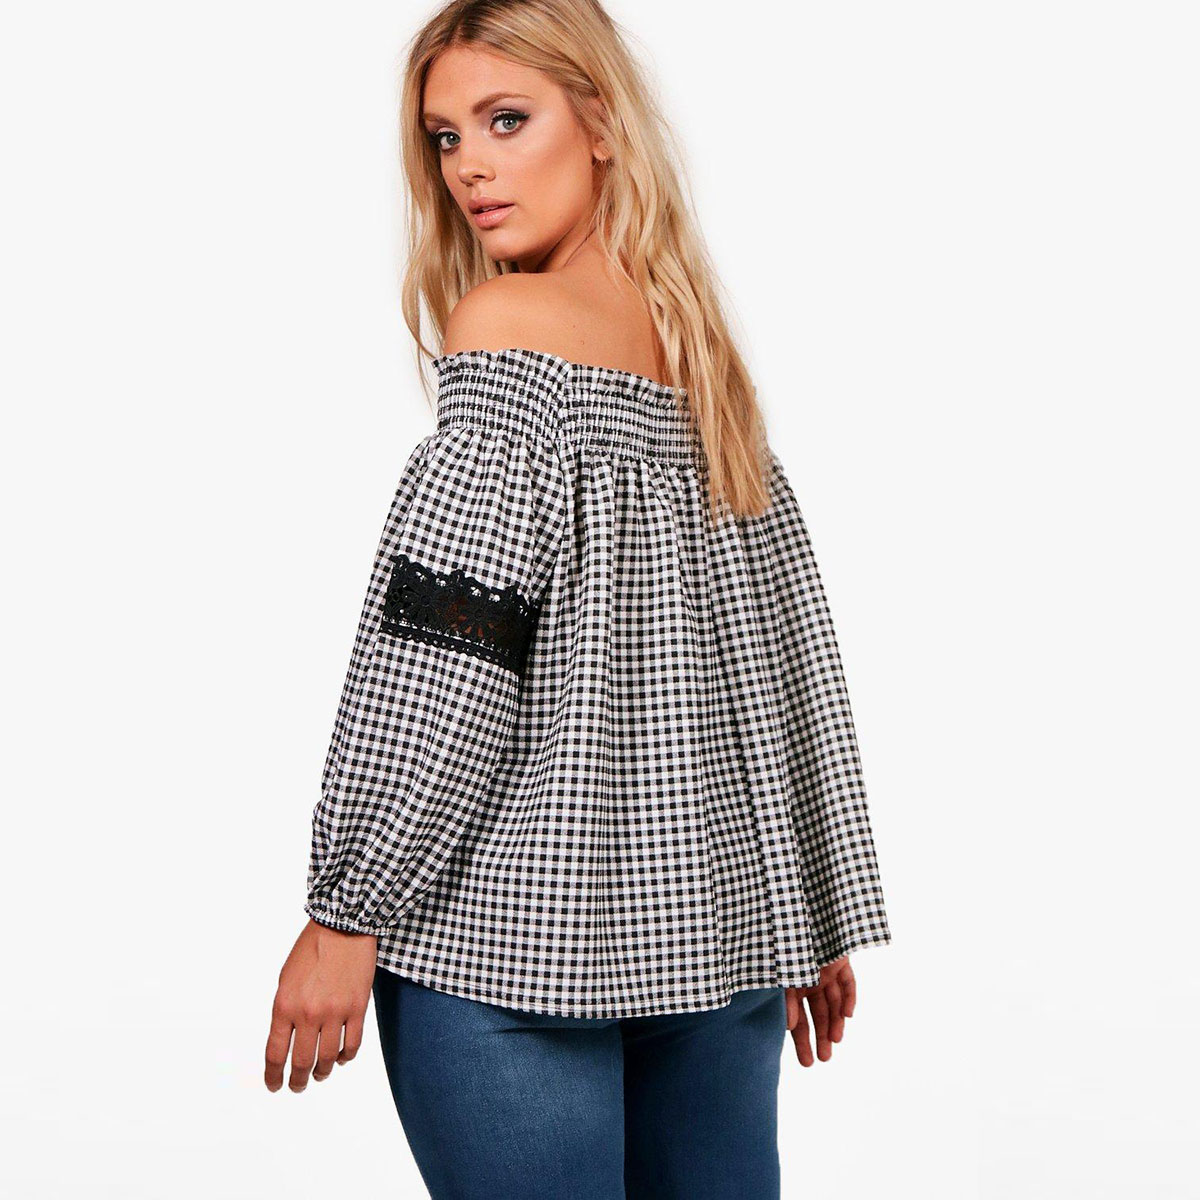 MCO 2018 Sexy Off Shoulder Plus Size Plaid Top Casual Lace Oversized Gingham Bardot Blouse Basic Big Women Clothing 5xl 6xl 7xl 2